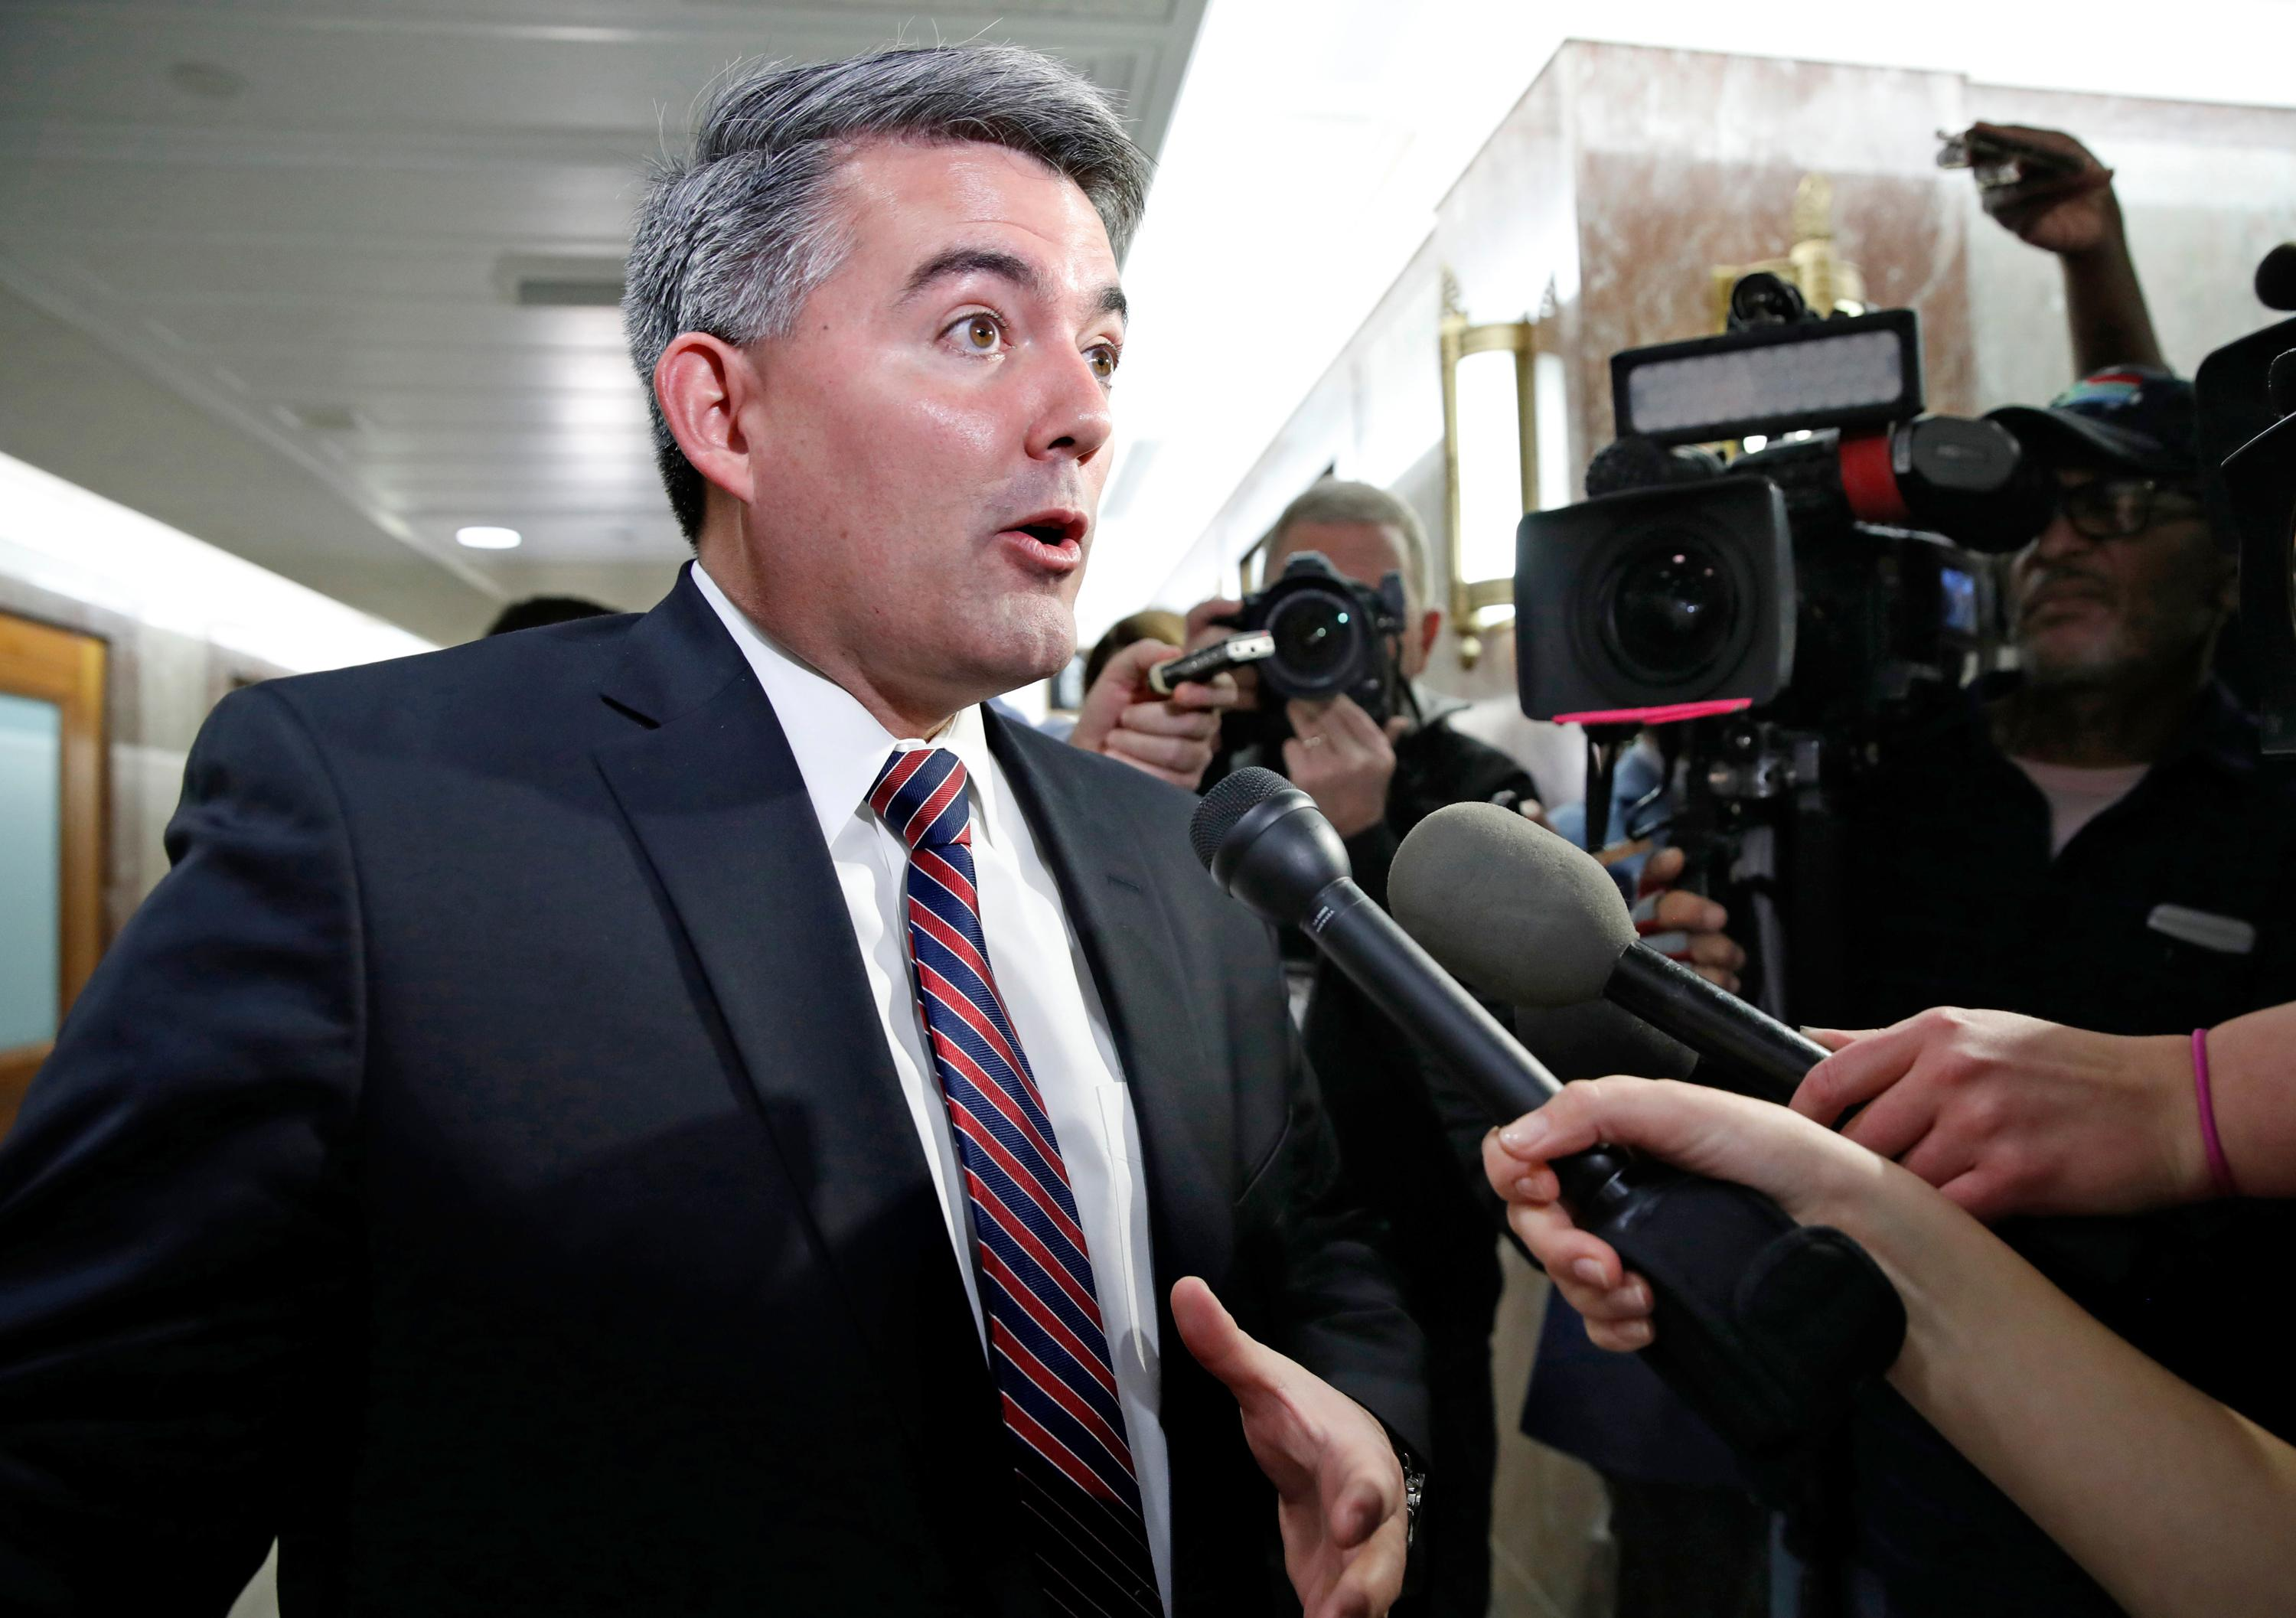 washingtontimes.com - Andrew Blake - Cory Gardner: Russia ought to be named a state sponsor of terror